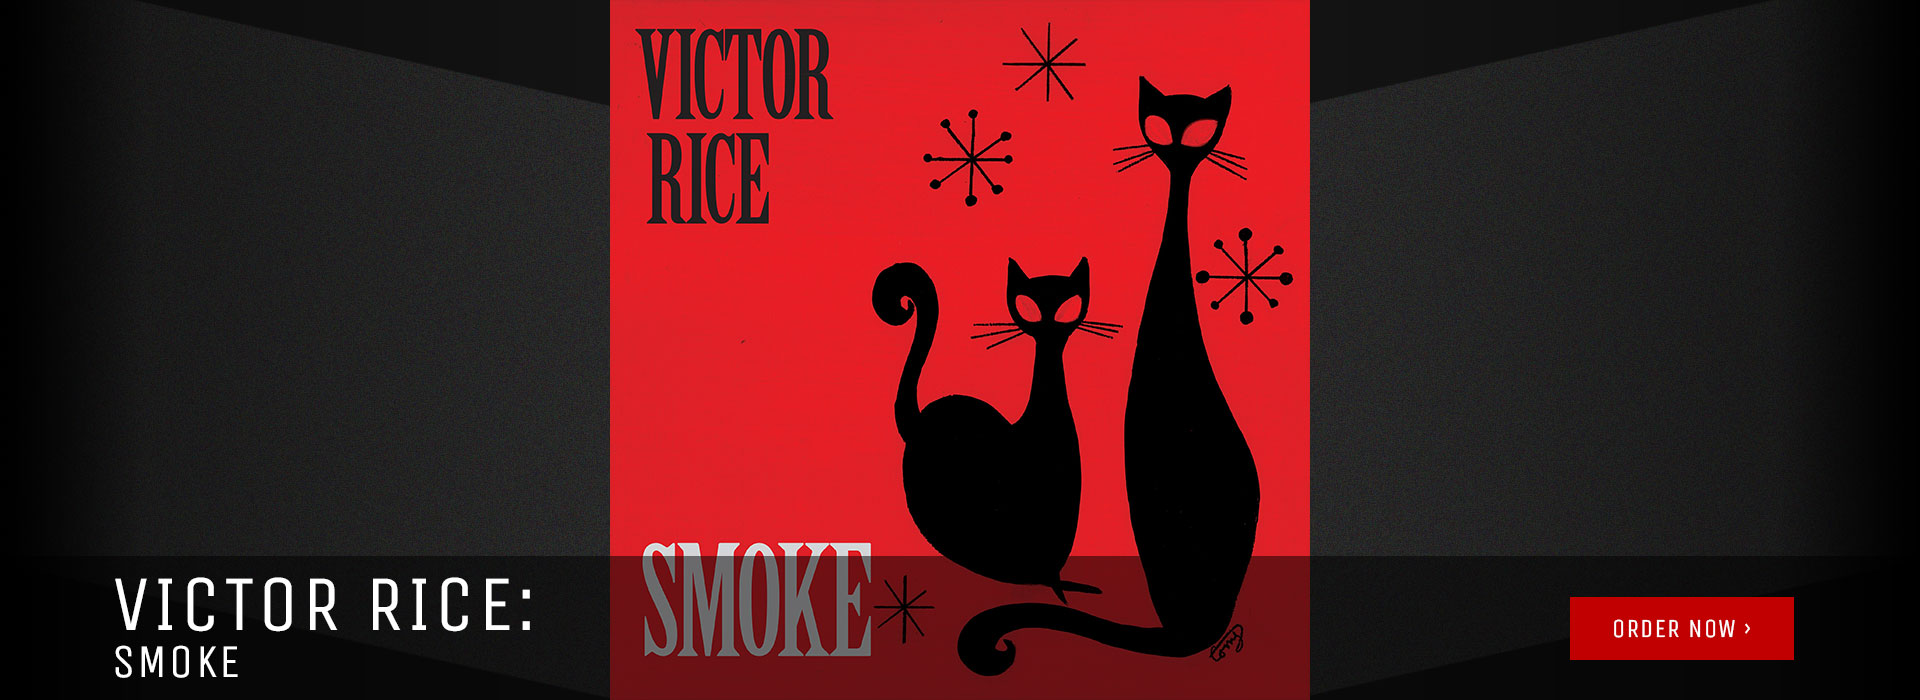 Order Smoke from Victor Rice today!